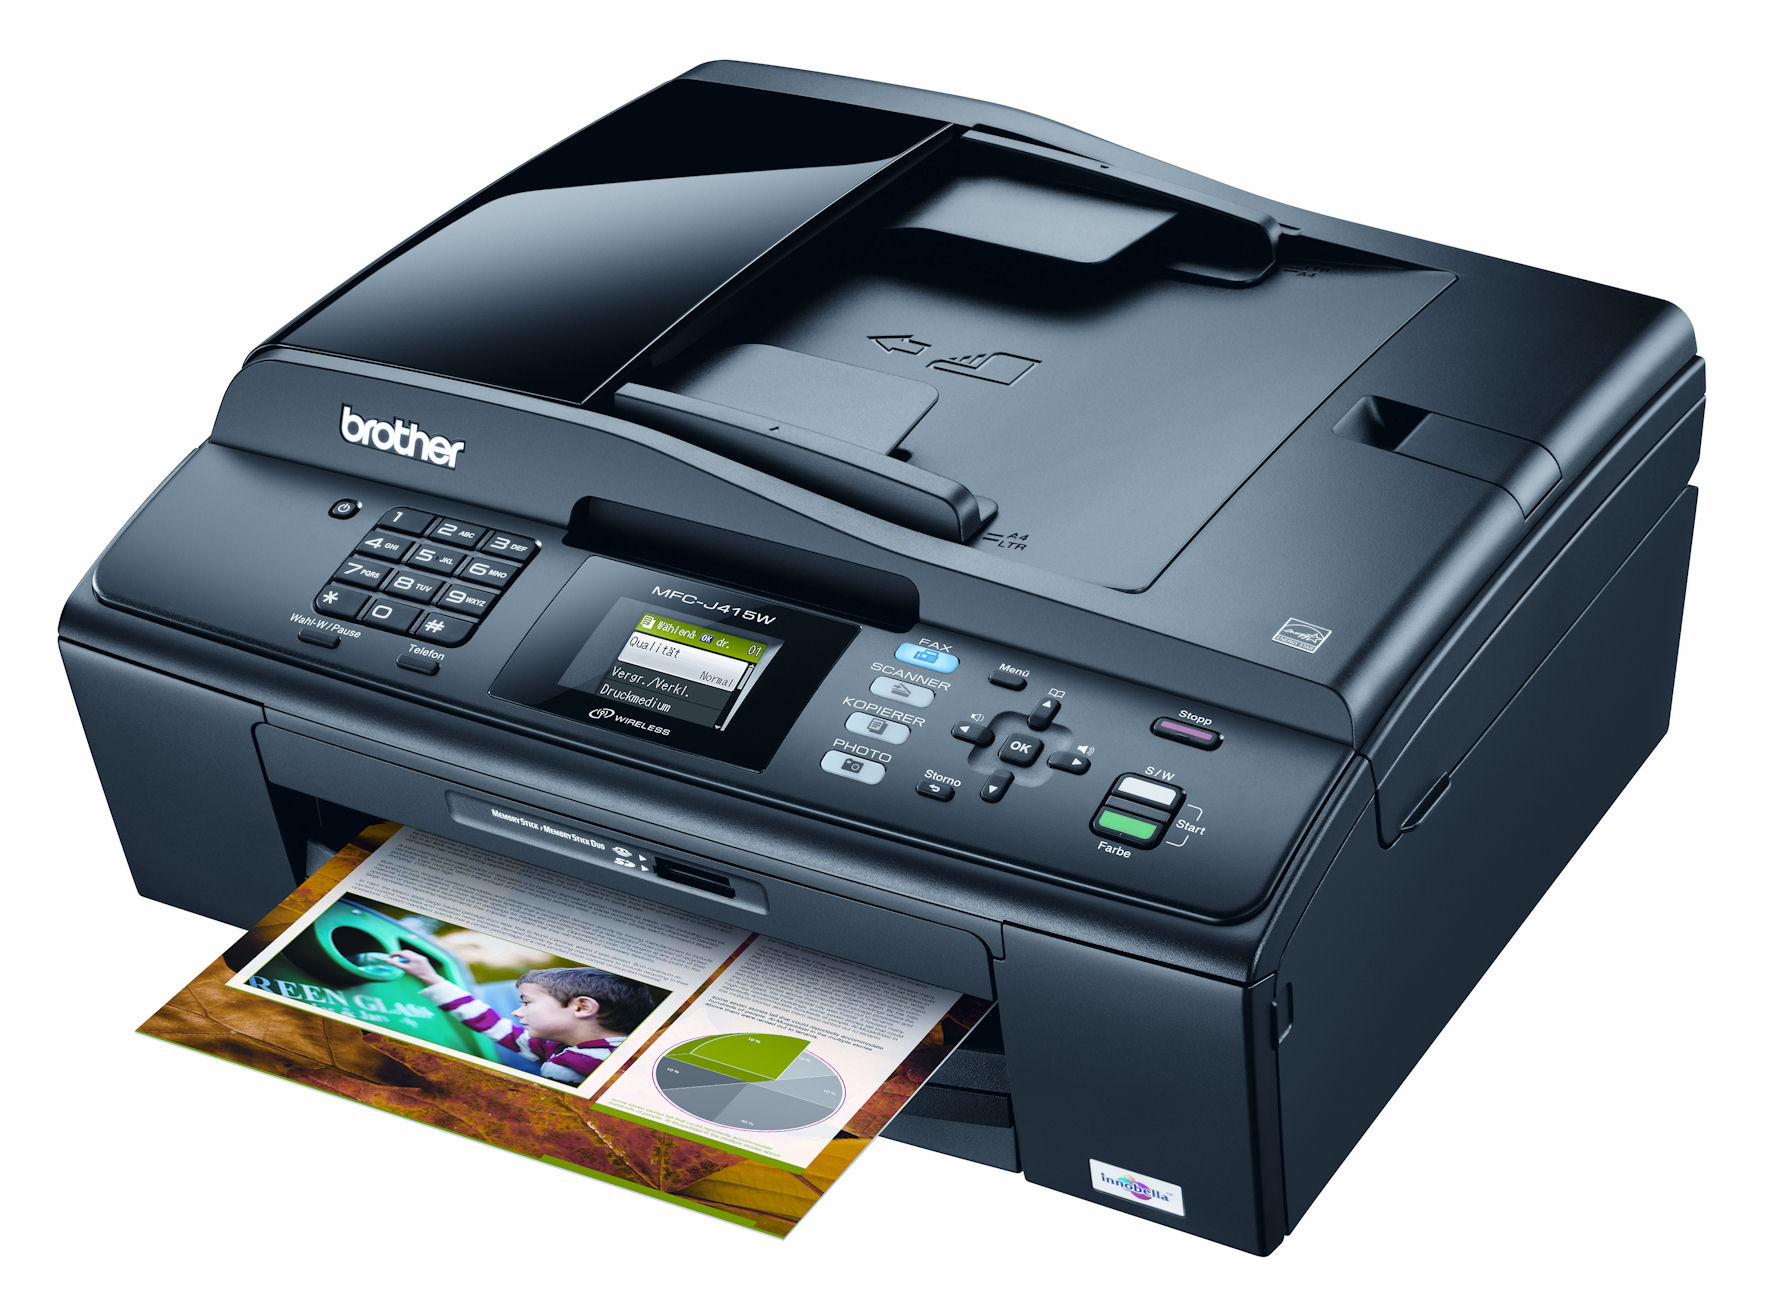 Brother MFC-425CN Printer Fax Windows 8